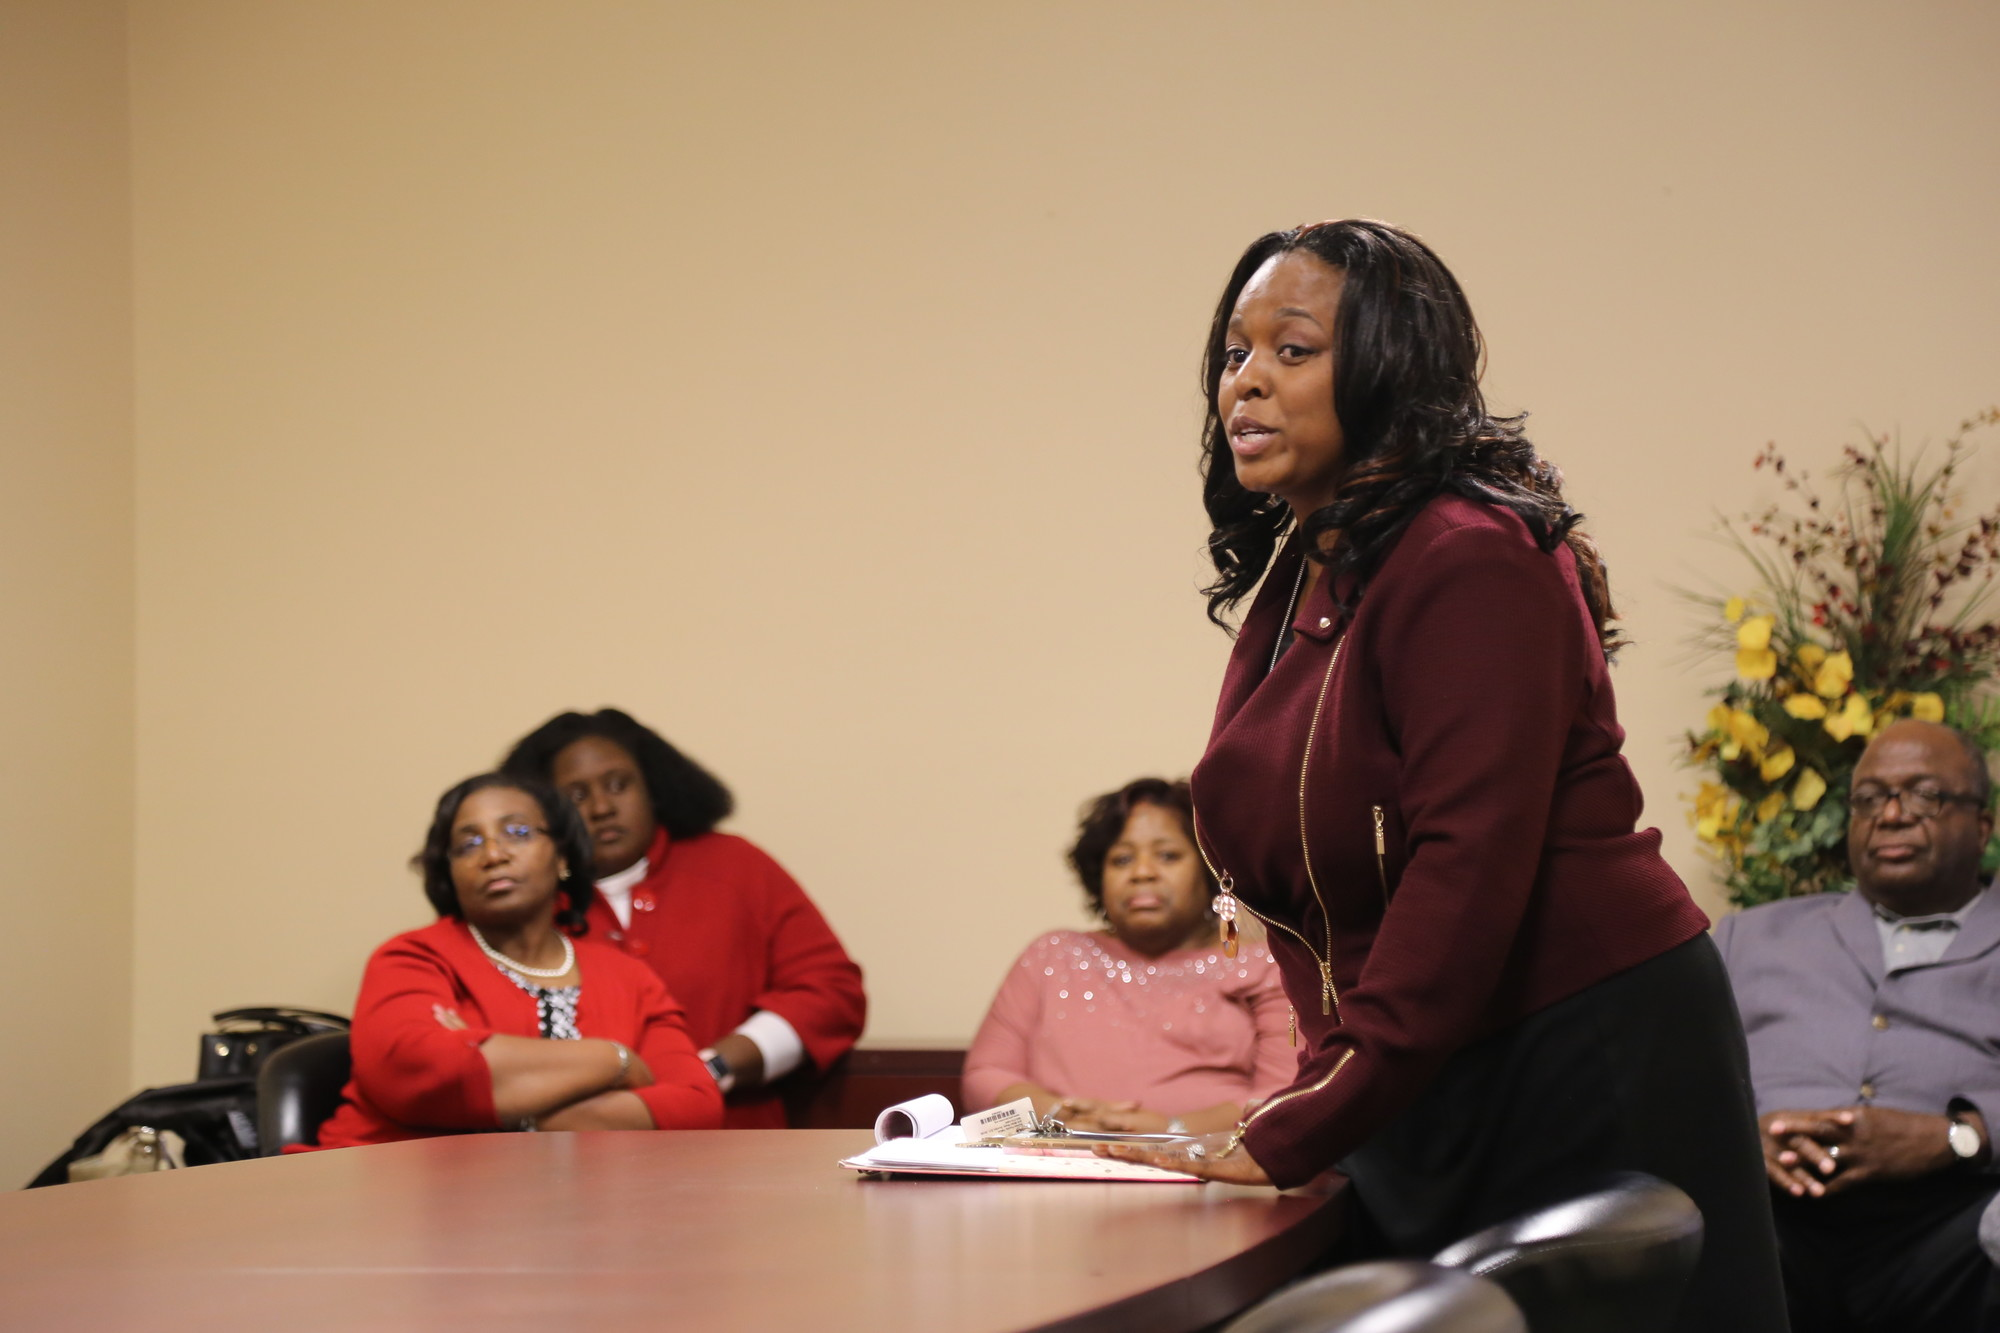 ADRIENNE SARVIS / THE SUMTER ITEMChaste'y Rayford-Gibson, overseer of the childcare center, told parents during a meeting with parents on Monday night that Grace Cathedral Child Development Center would be closing for financial reasons.